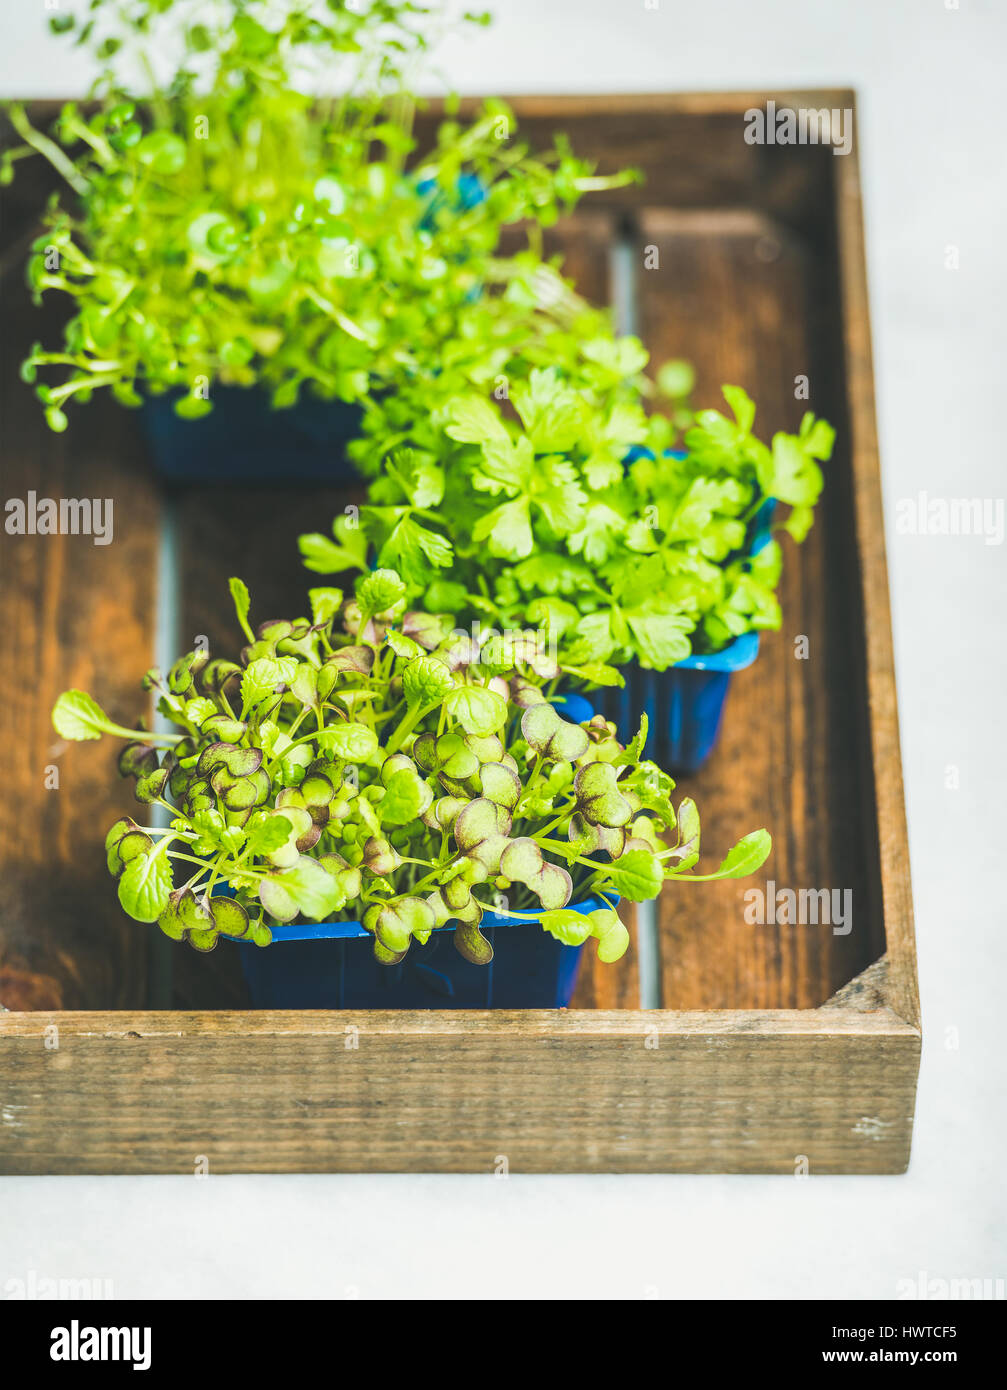 Radish kress, water kress and coriander sprouts in wooden box - Stock Image